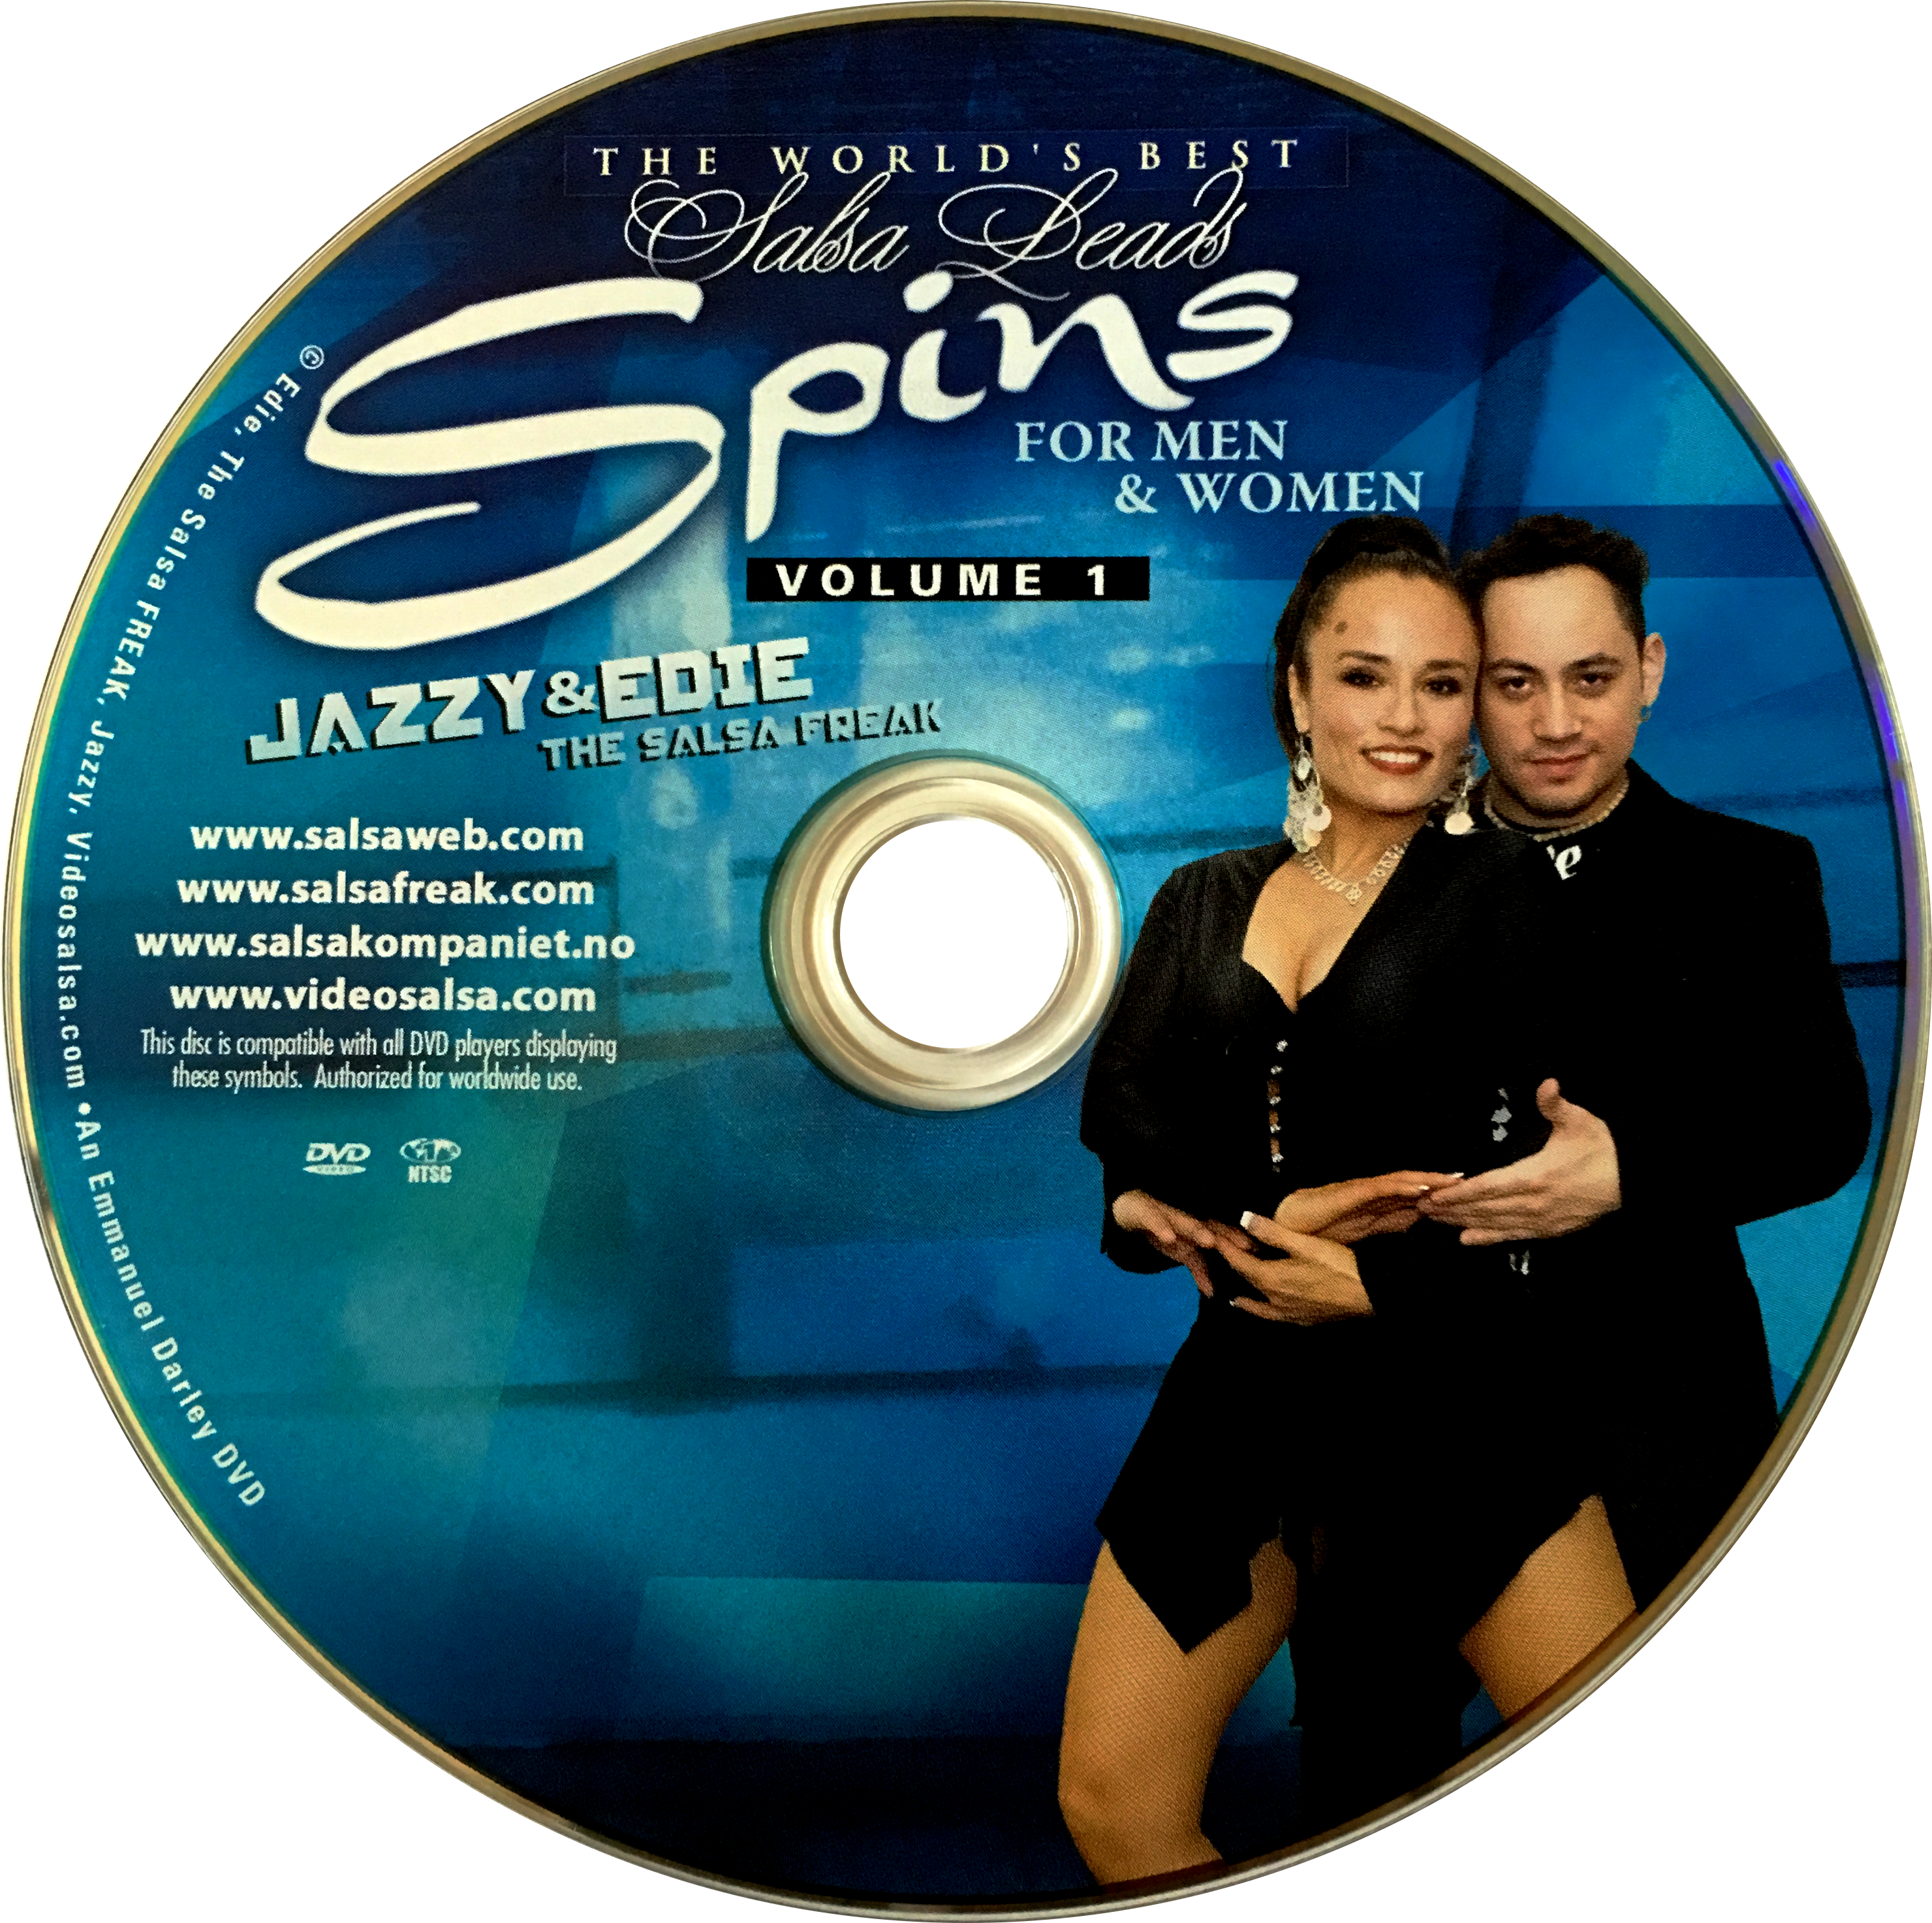 Spins for Men and Women with Jazzy of Norway Instructional DVD